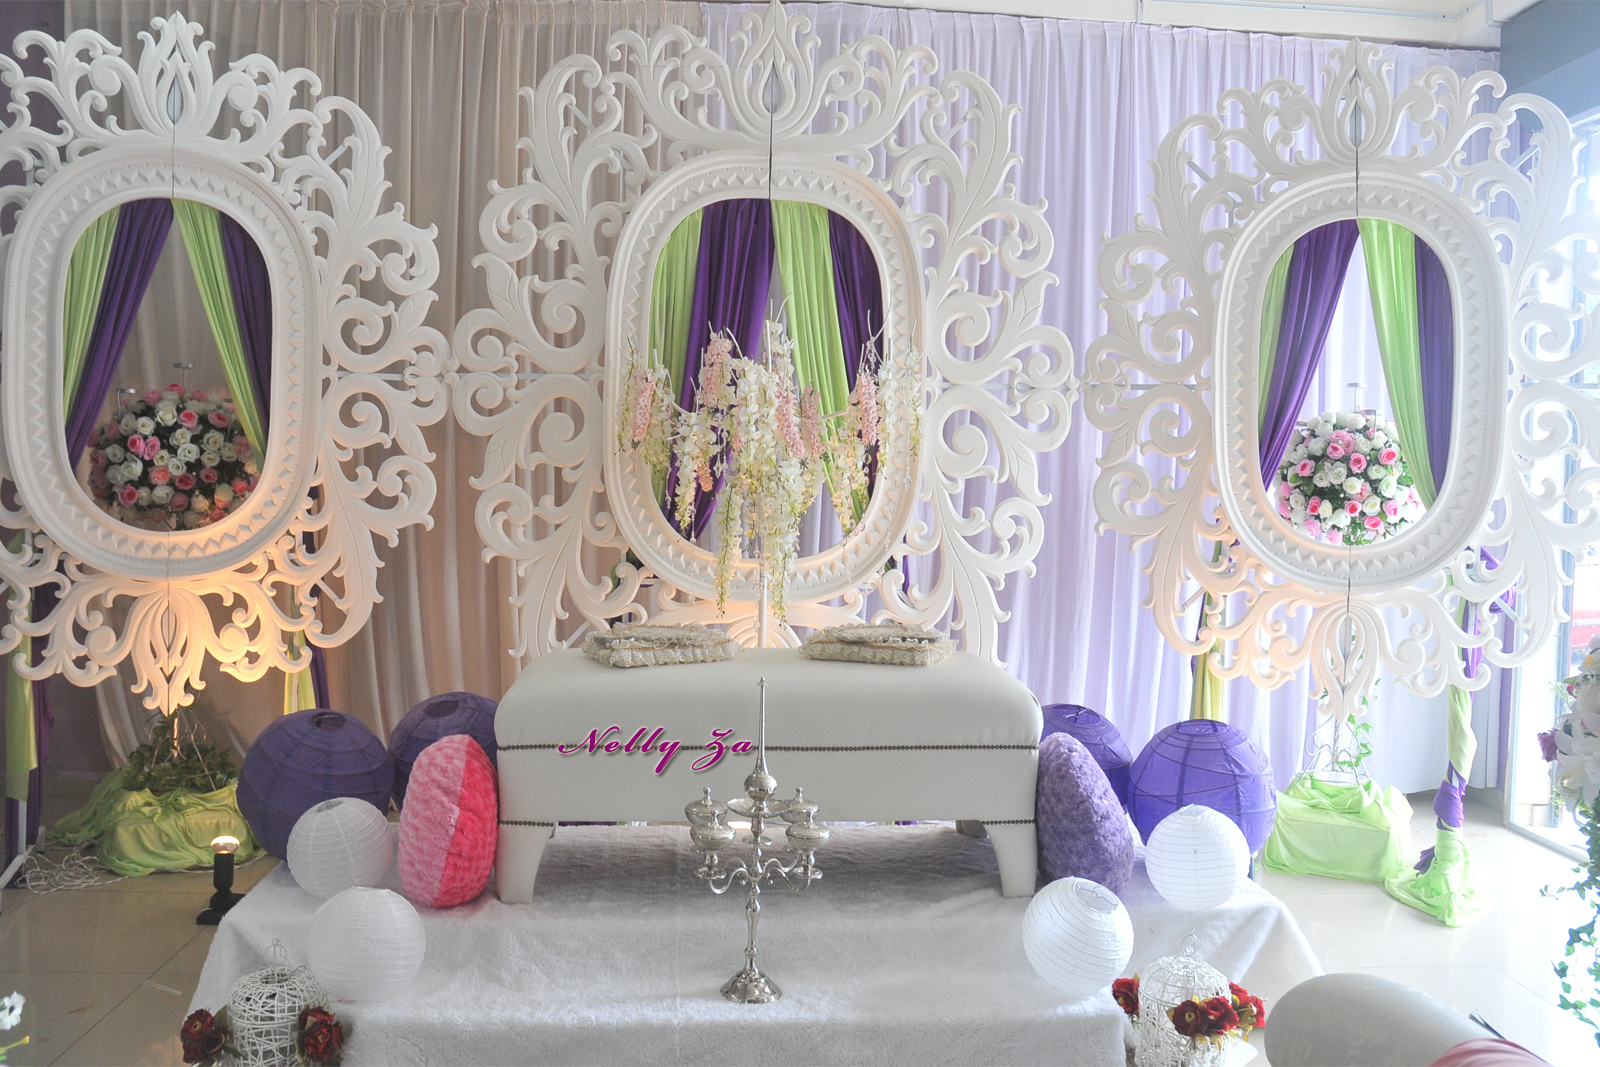 Posted by Butik Pengantin Nelly Za at 5:28 PM | Labels: Pelamin |